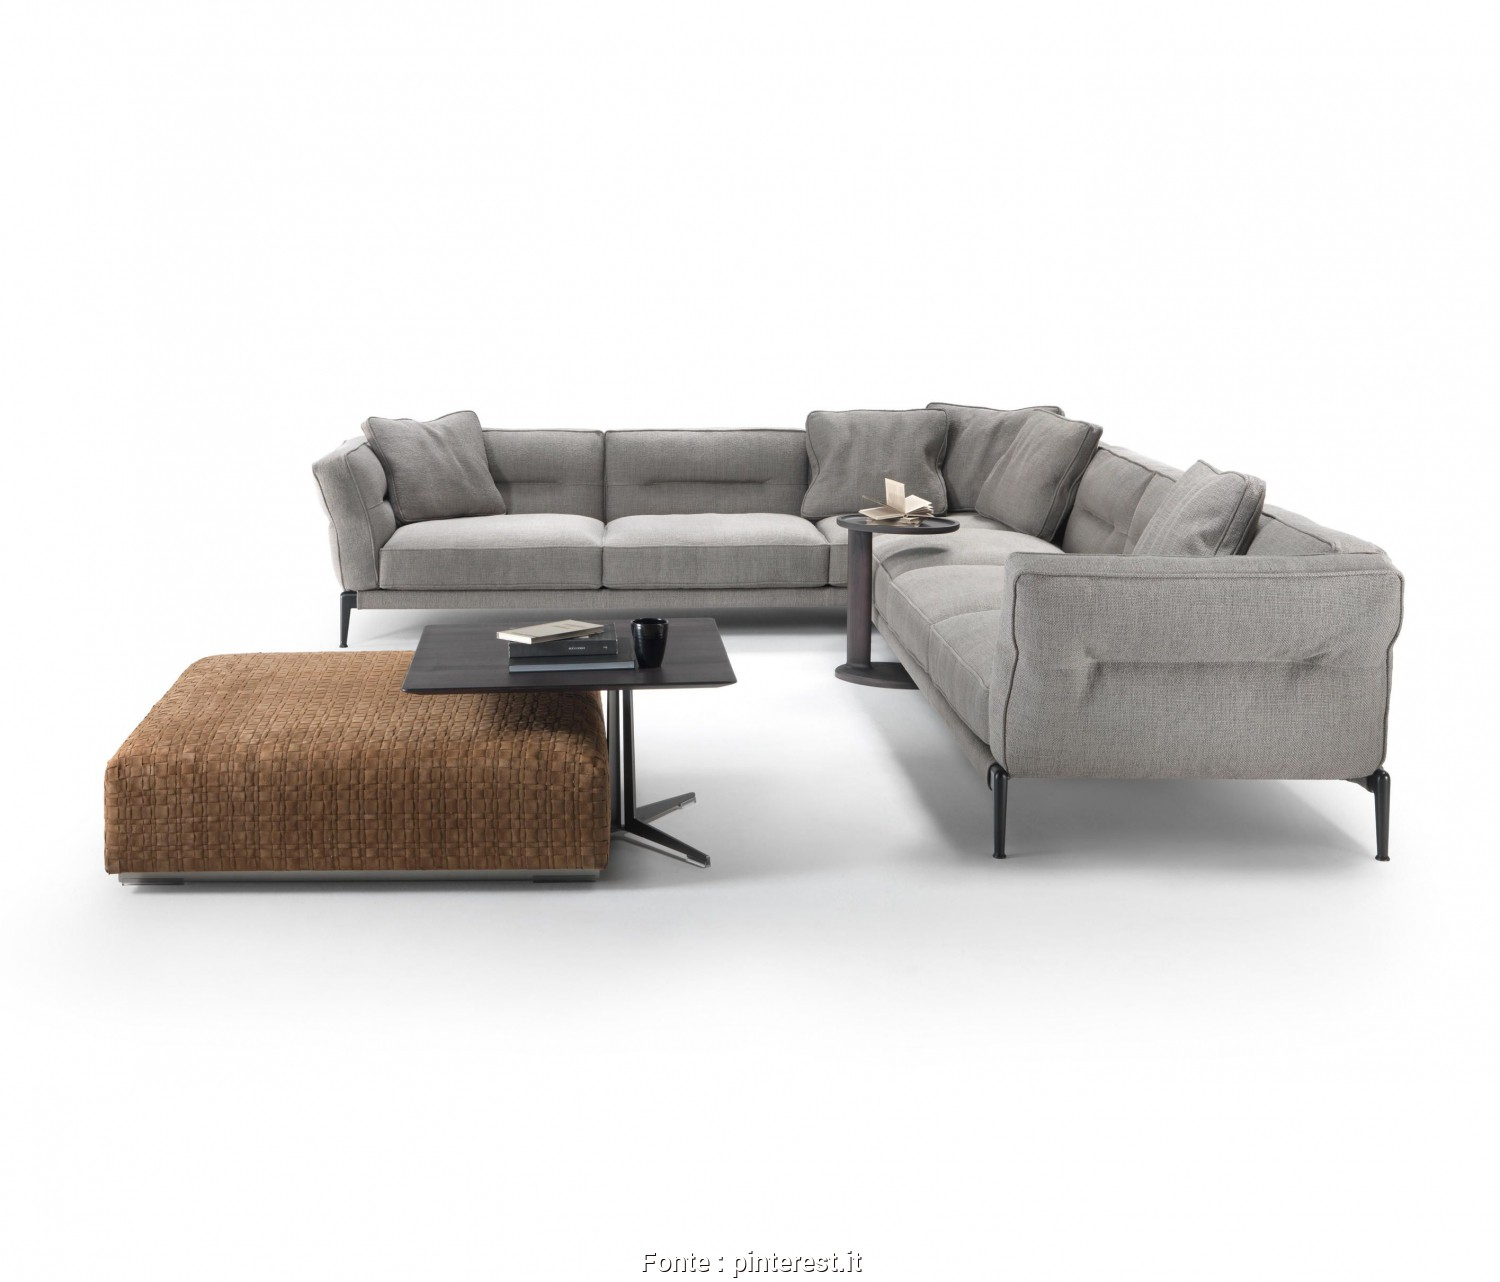 Adda Divano Componibile, Costoso ADDA, Designer Sofas From Flexform, All Information, High-Resolution Images, CADs, Catalogues, Contact Information, Find Your Nearest